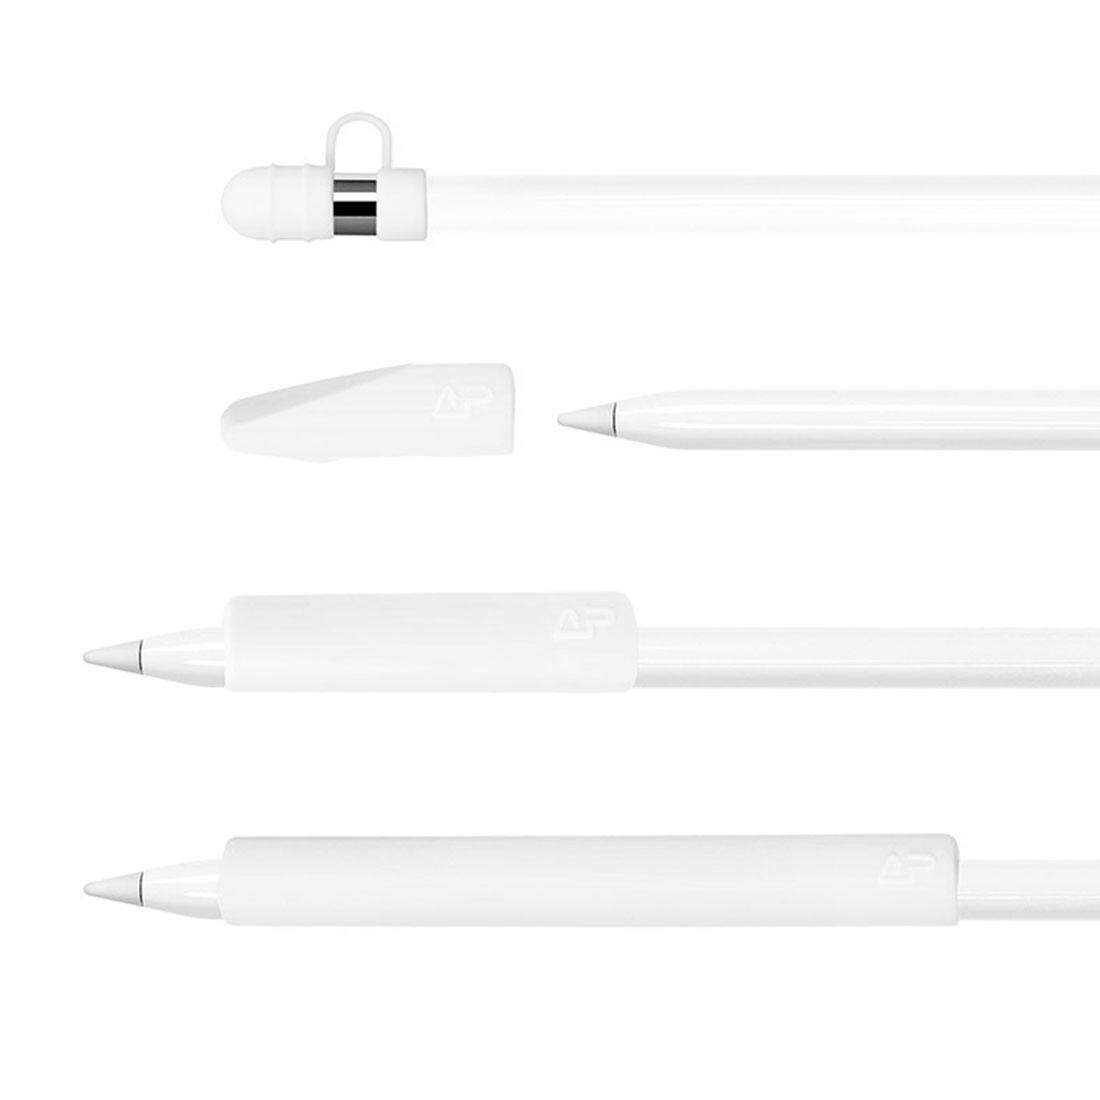 For Apple Pencil / iPad Pro Creative 4 in 1 Anti-lost (Pencil Cap + Pencil Point + 2*Penholder Cover) TouchPen Silicone Protective Set(White)